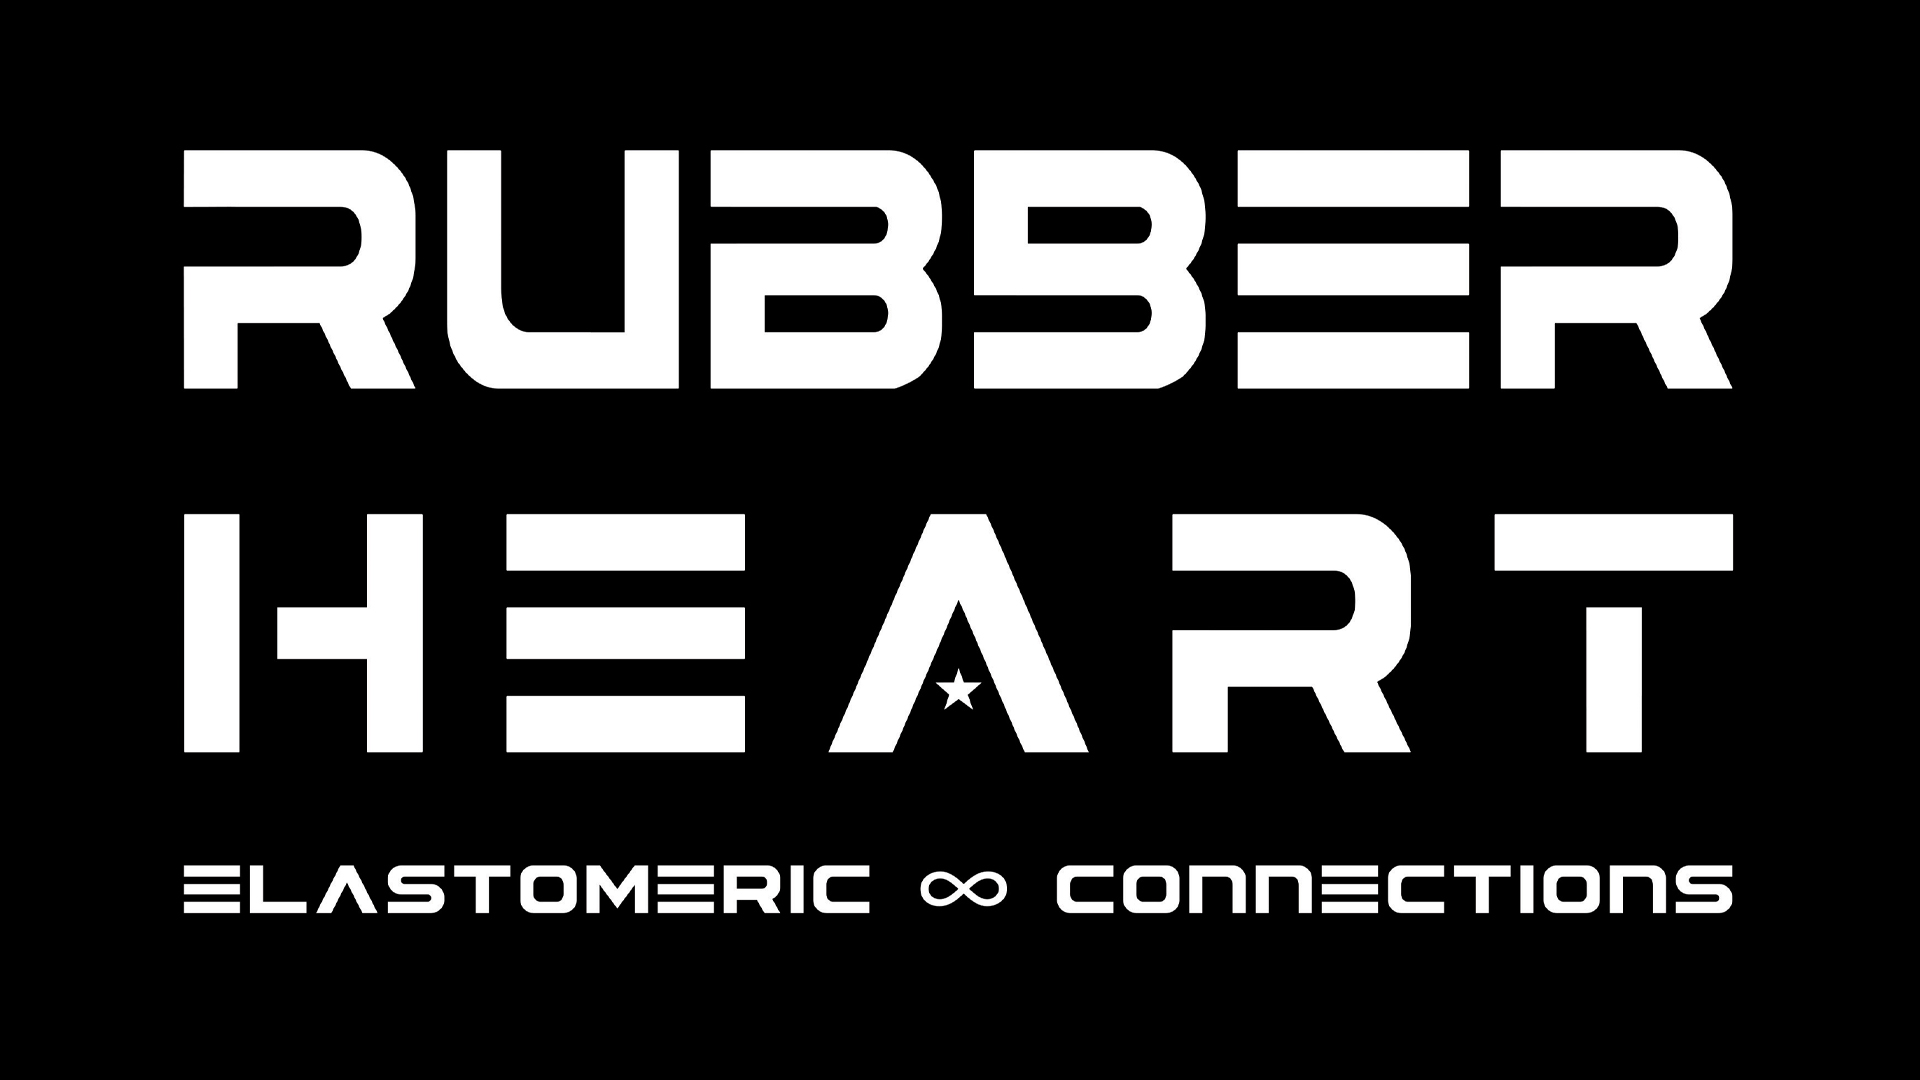 Rubber Heart Ltd - Official Logo